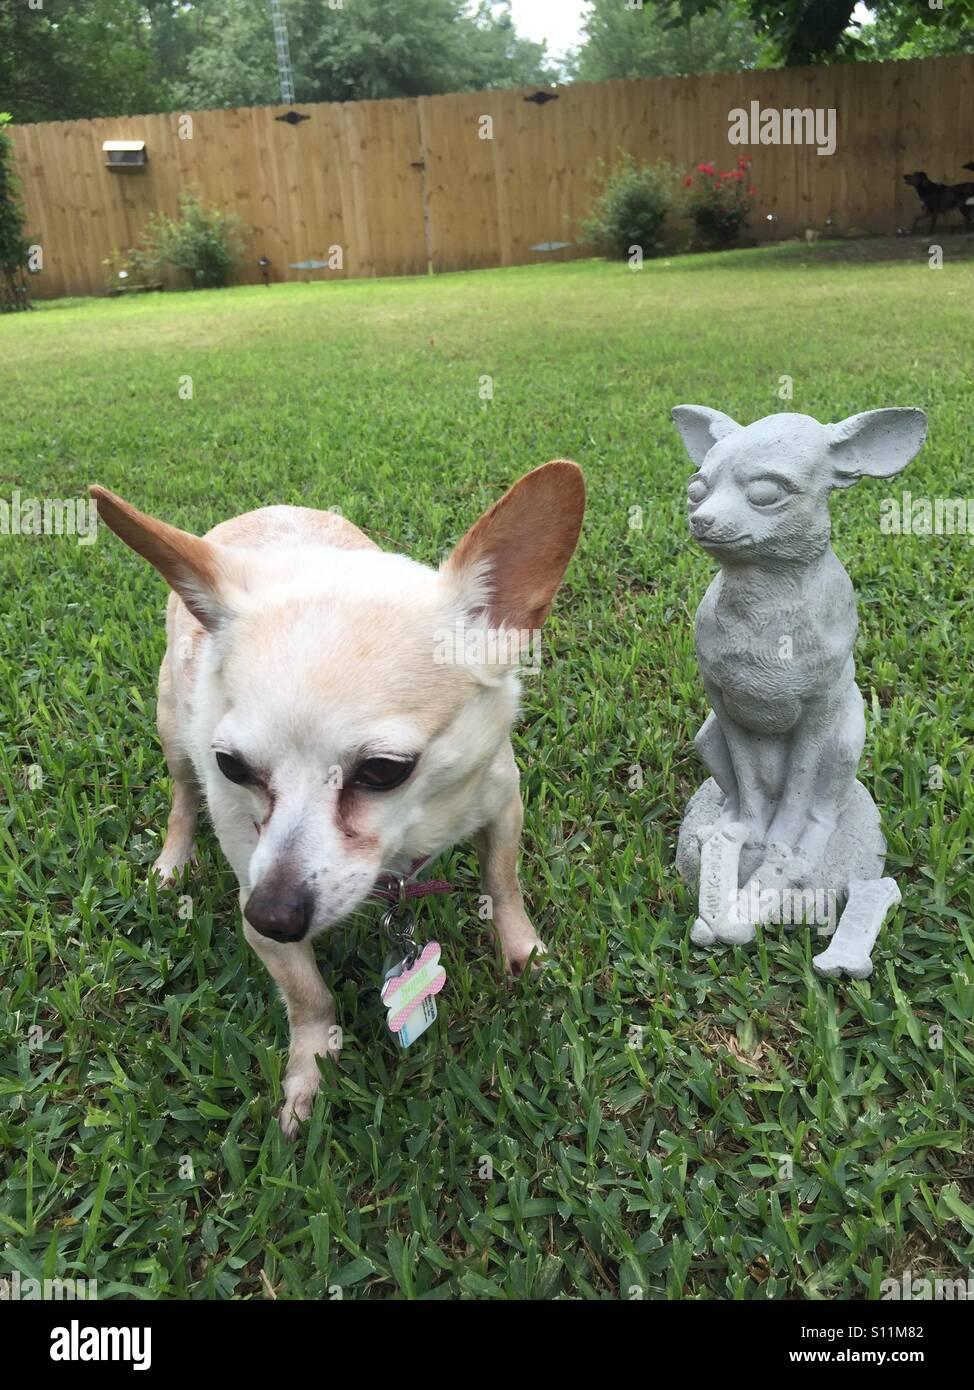 Delicieux Chihuahua Not To Sure About The Concrete Chihuahua Garden Statue In Her  Honor.   Stock